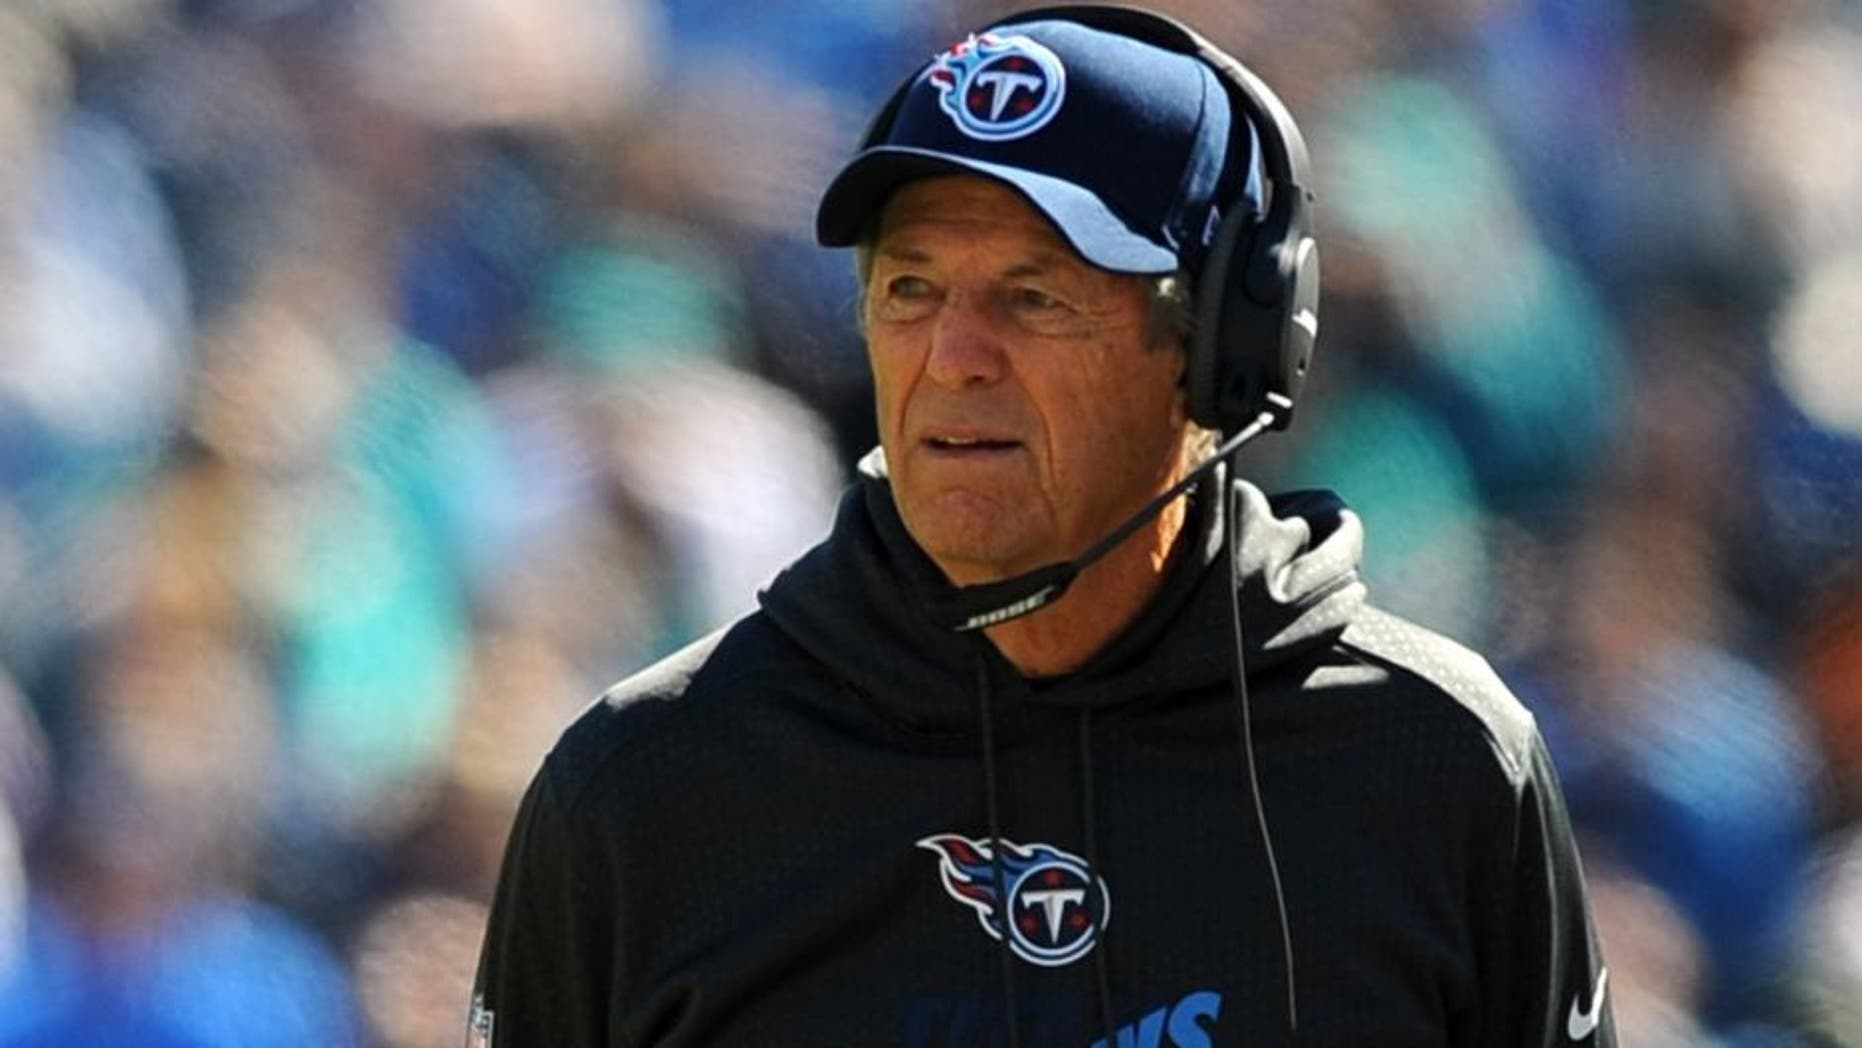 Oct 18, 2015; Nashville, TN, USA; Tennessee Titans assistant head coach Dick LeBeau during the first half against the Miami Dolphins at Nissan Stadium. Mandatory Credit: Christopher Hanewinckel-USA TODAY Sports